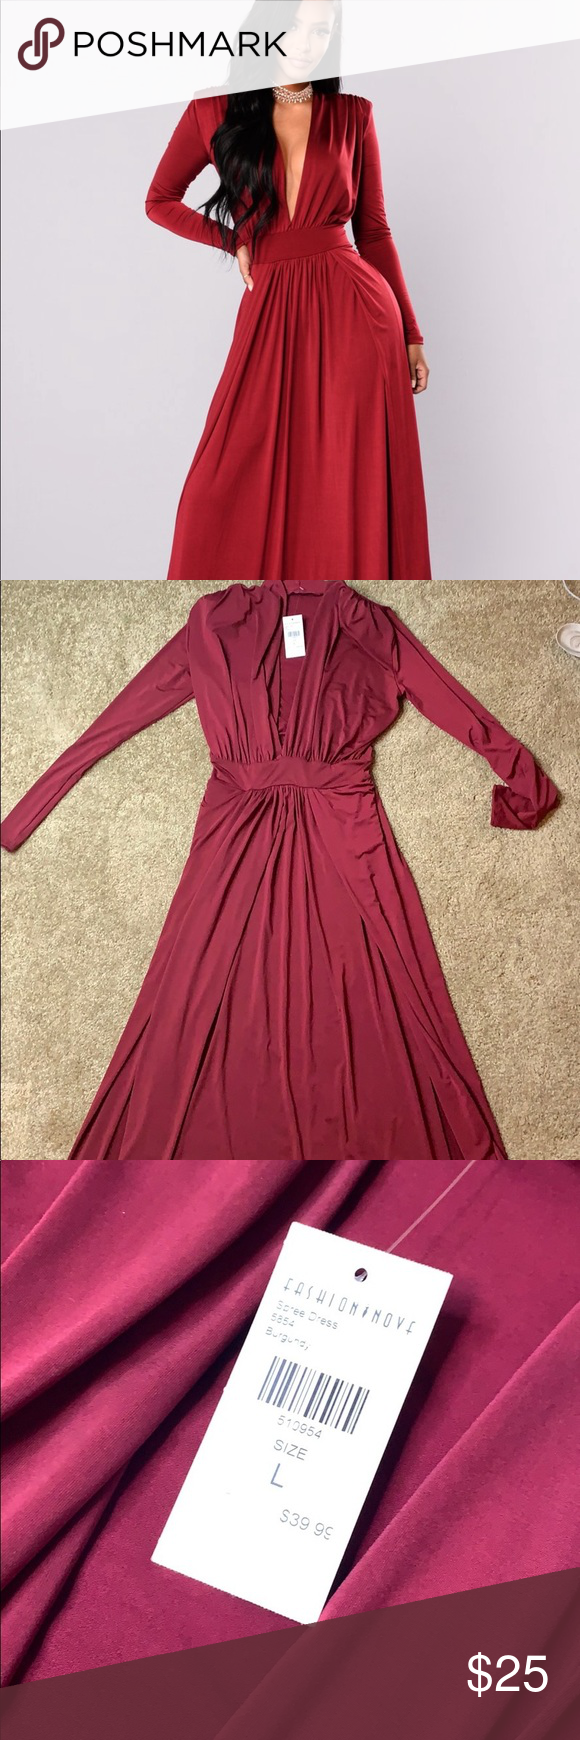 2921396d621 Fashion Nova Evening Gown Size  Large BRAND NEW NEVER WORN long burgundy  evening gown with tags attached. The dress has two slits on each side and a  low cut ...